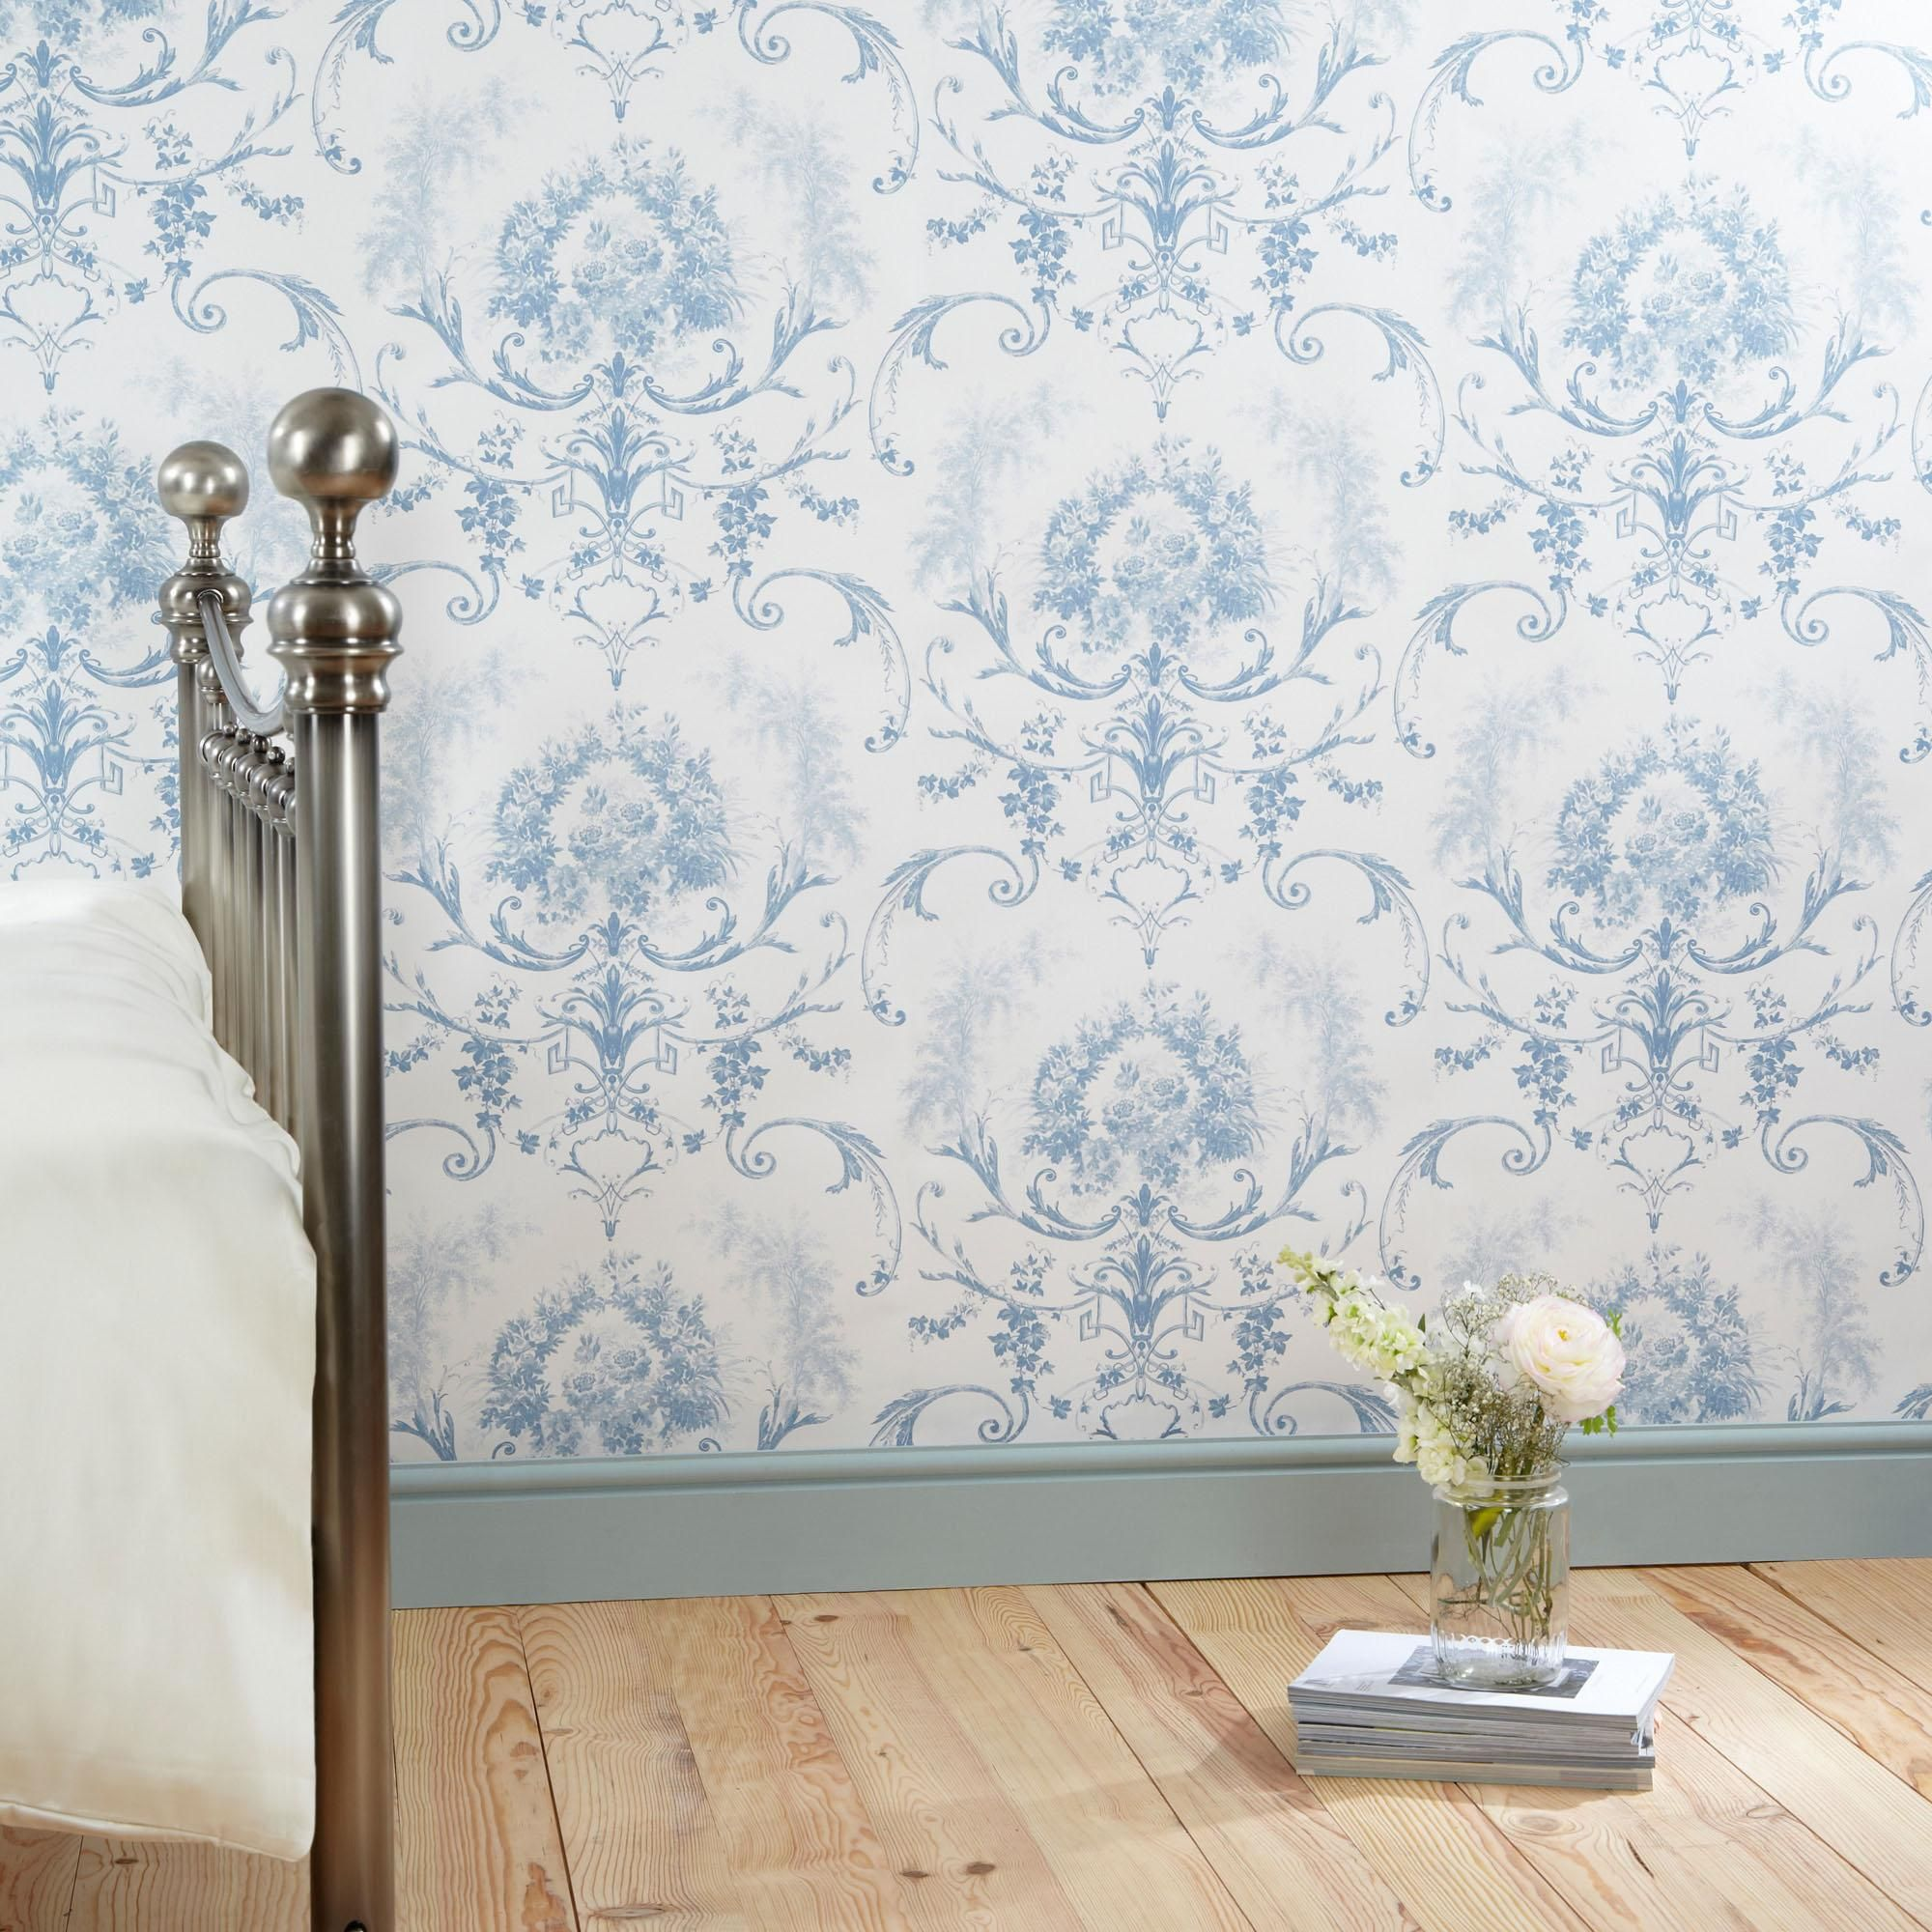 Dorma Blue Toile Wallpaper in 2020 Toile wallpaper, Blue